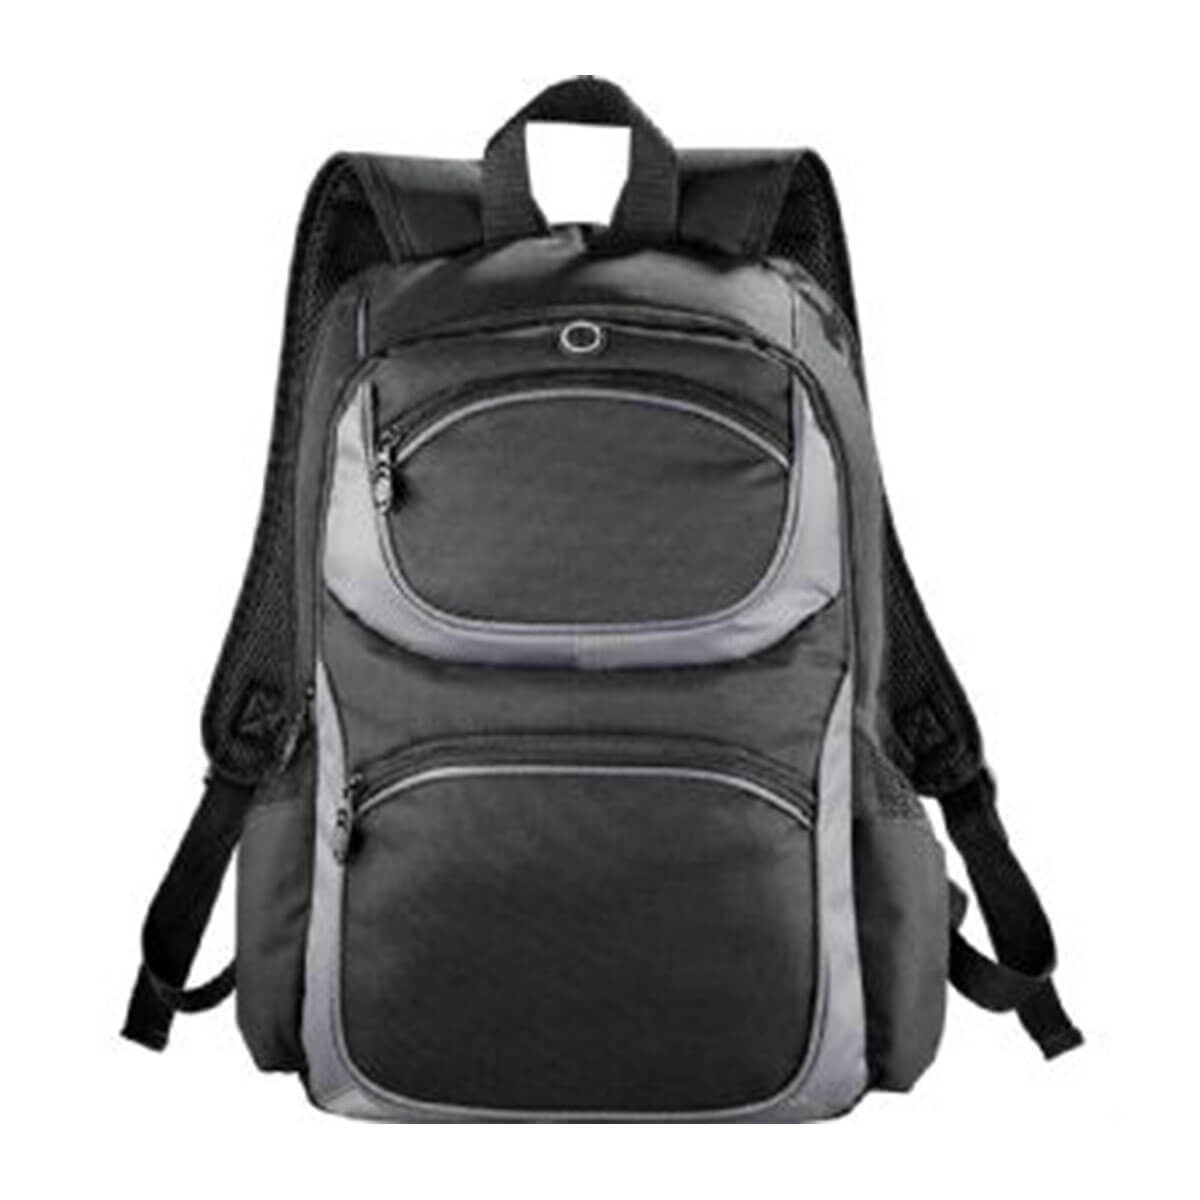 Continental Checkpoint-Friendly Compu-Backpack-Black